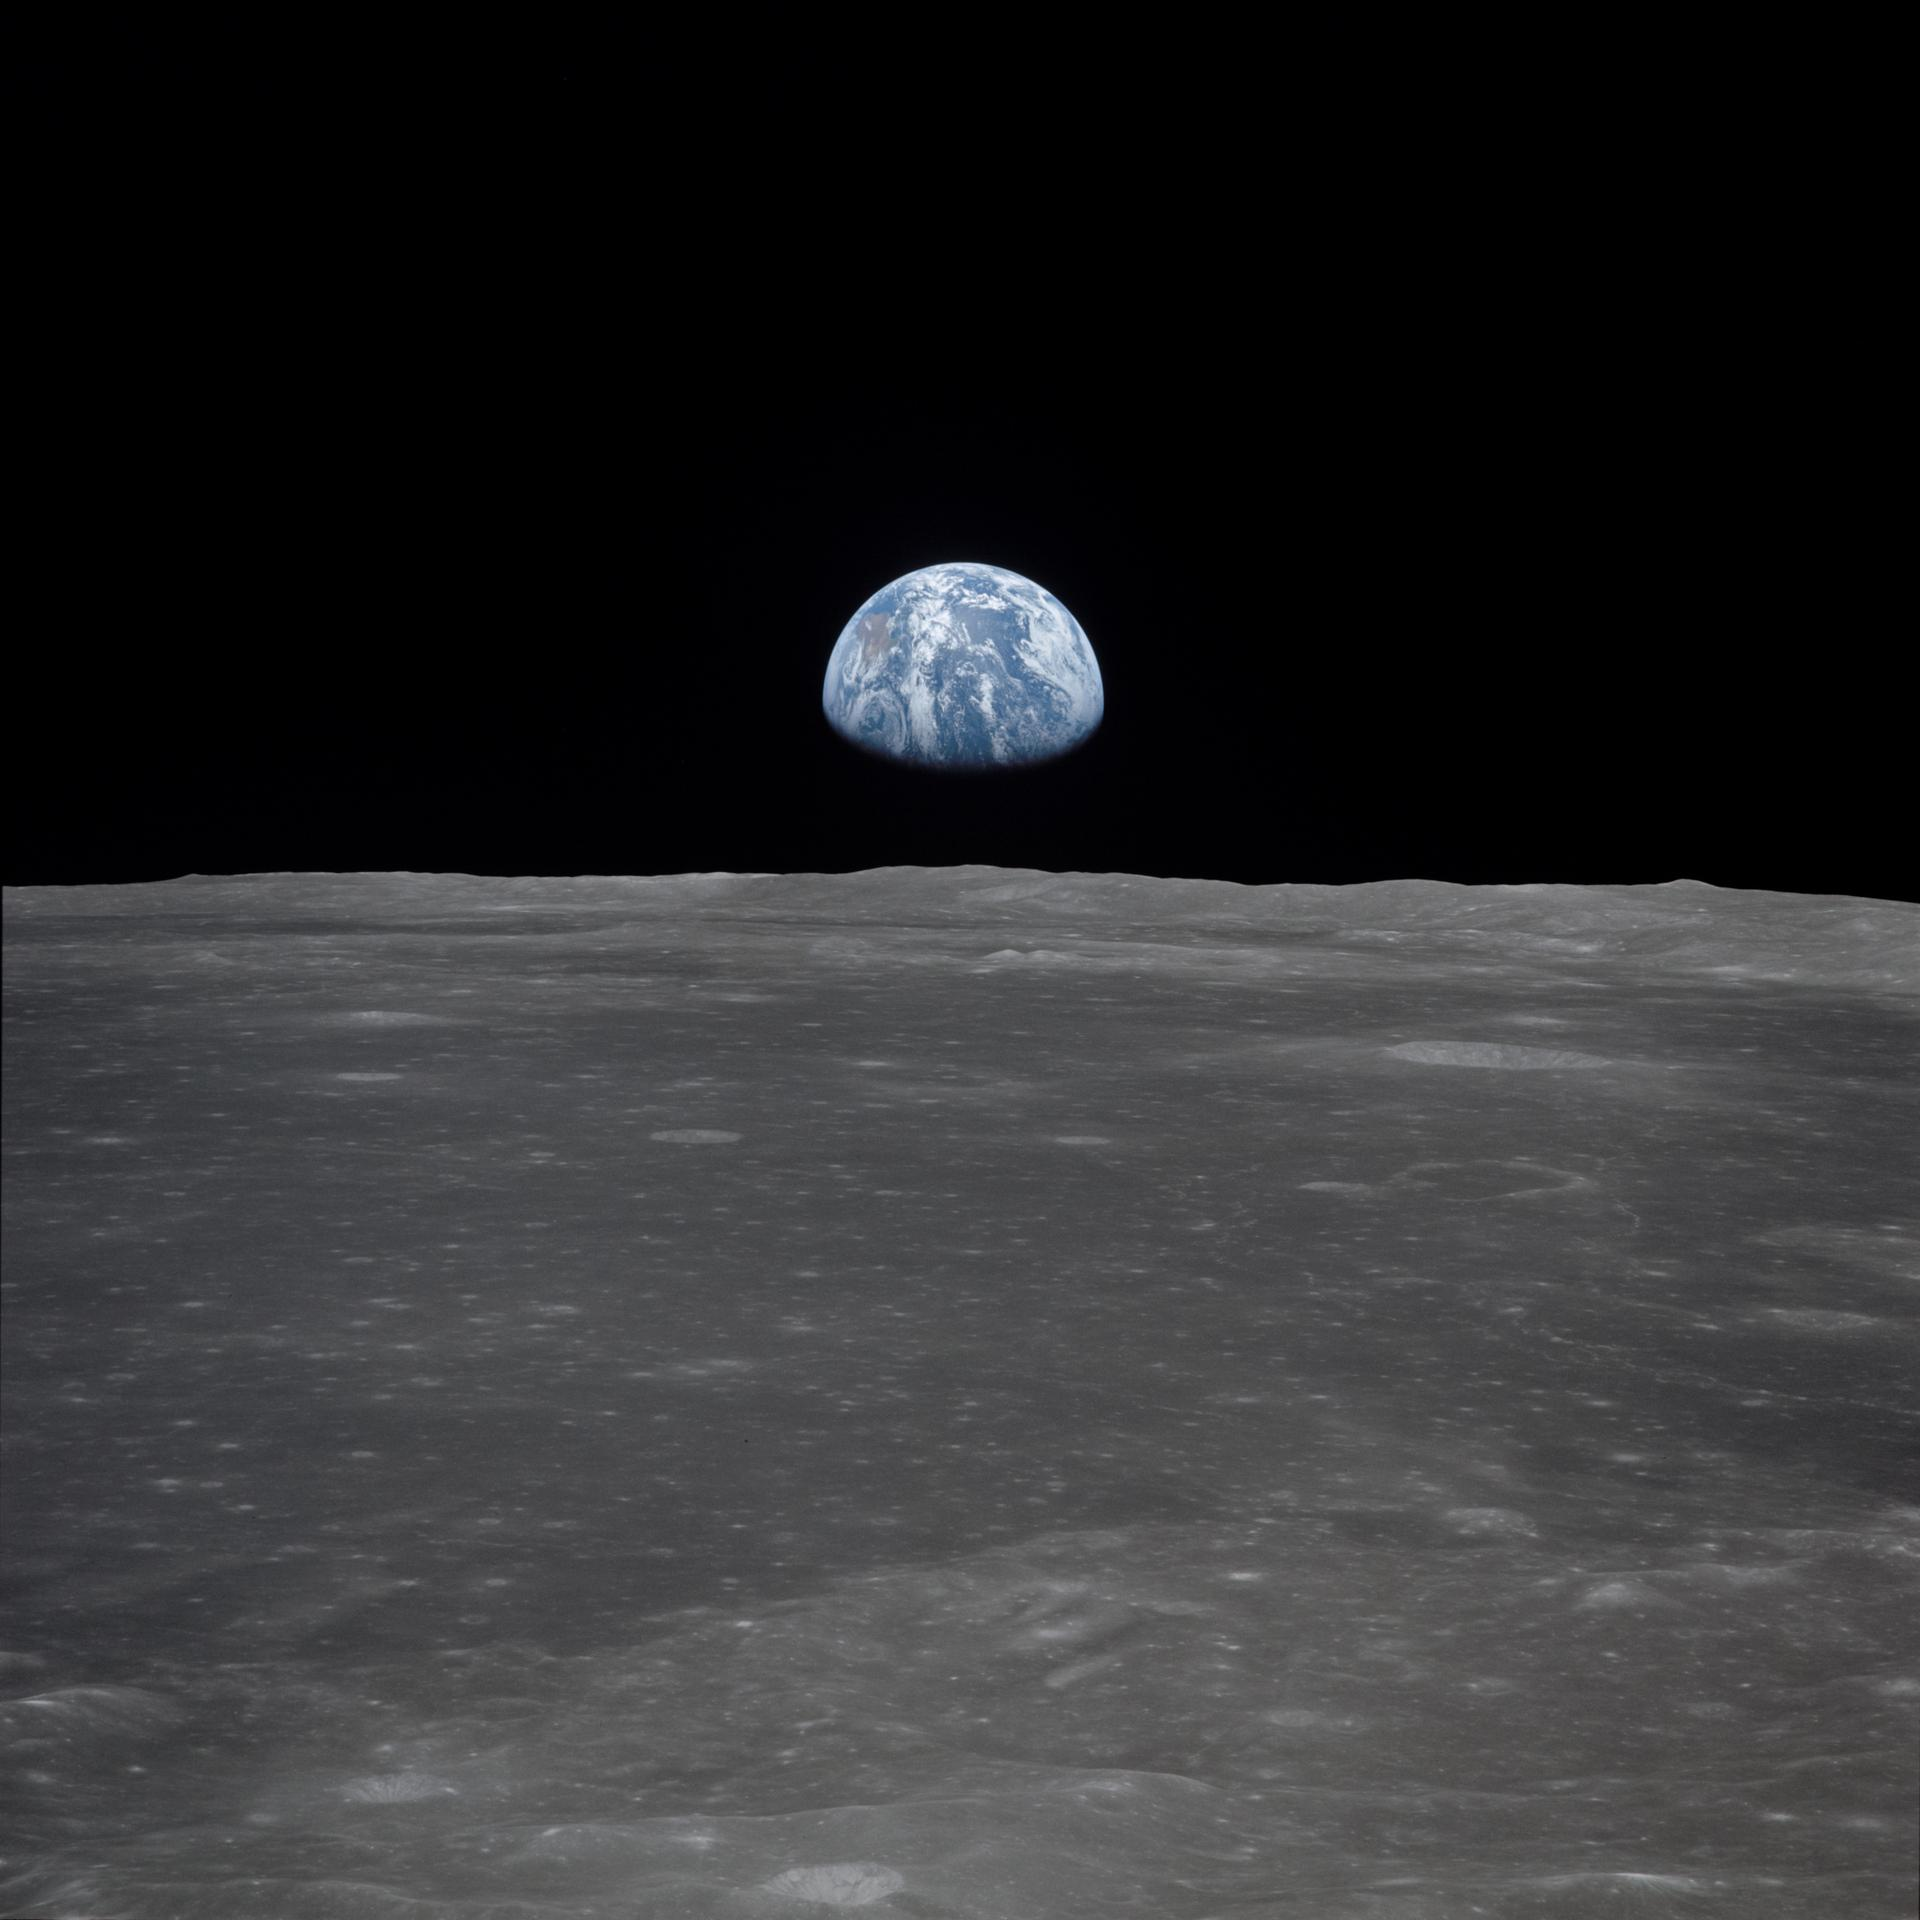 A view from the Apollo 11 spacecraft, showing the Earth rising above the moon's horizon (July 1969). - Image Credit: NASA